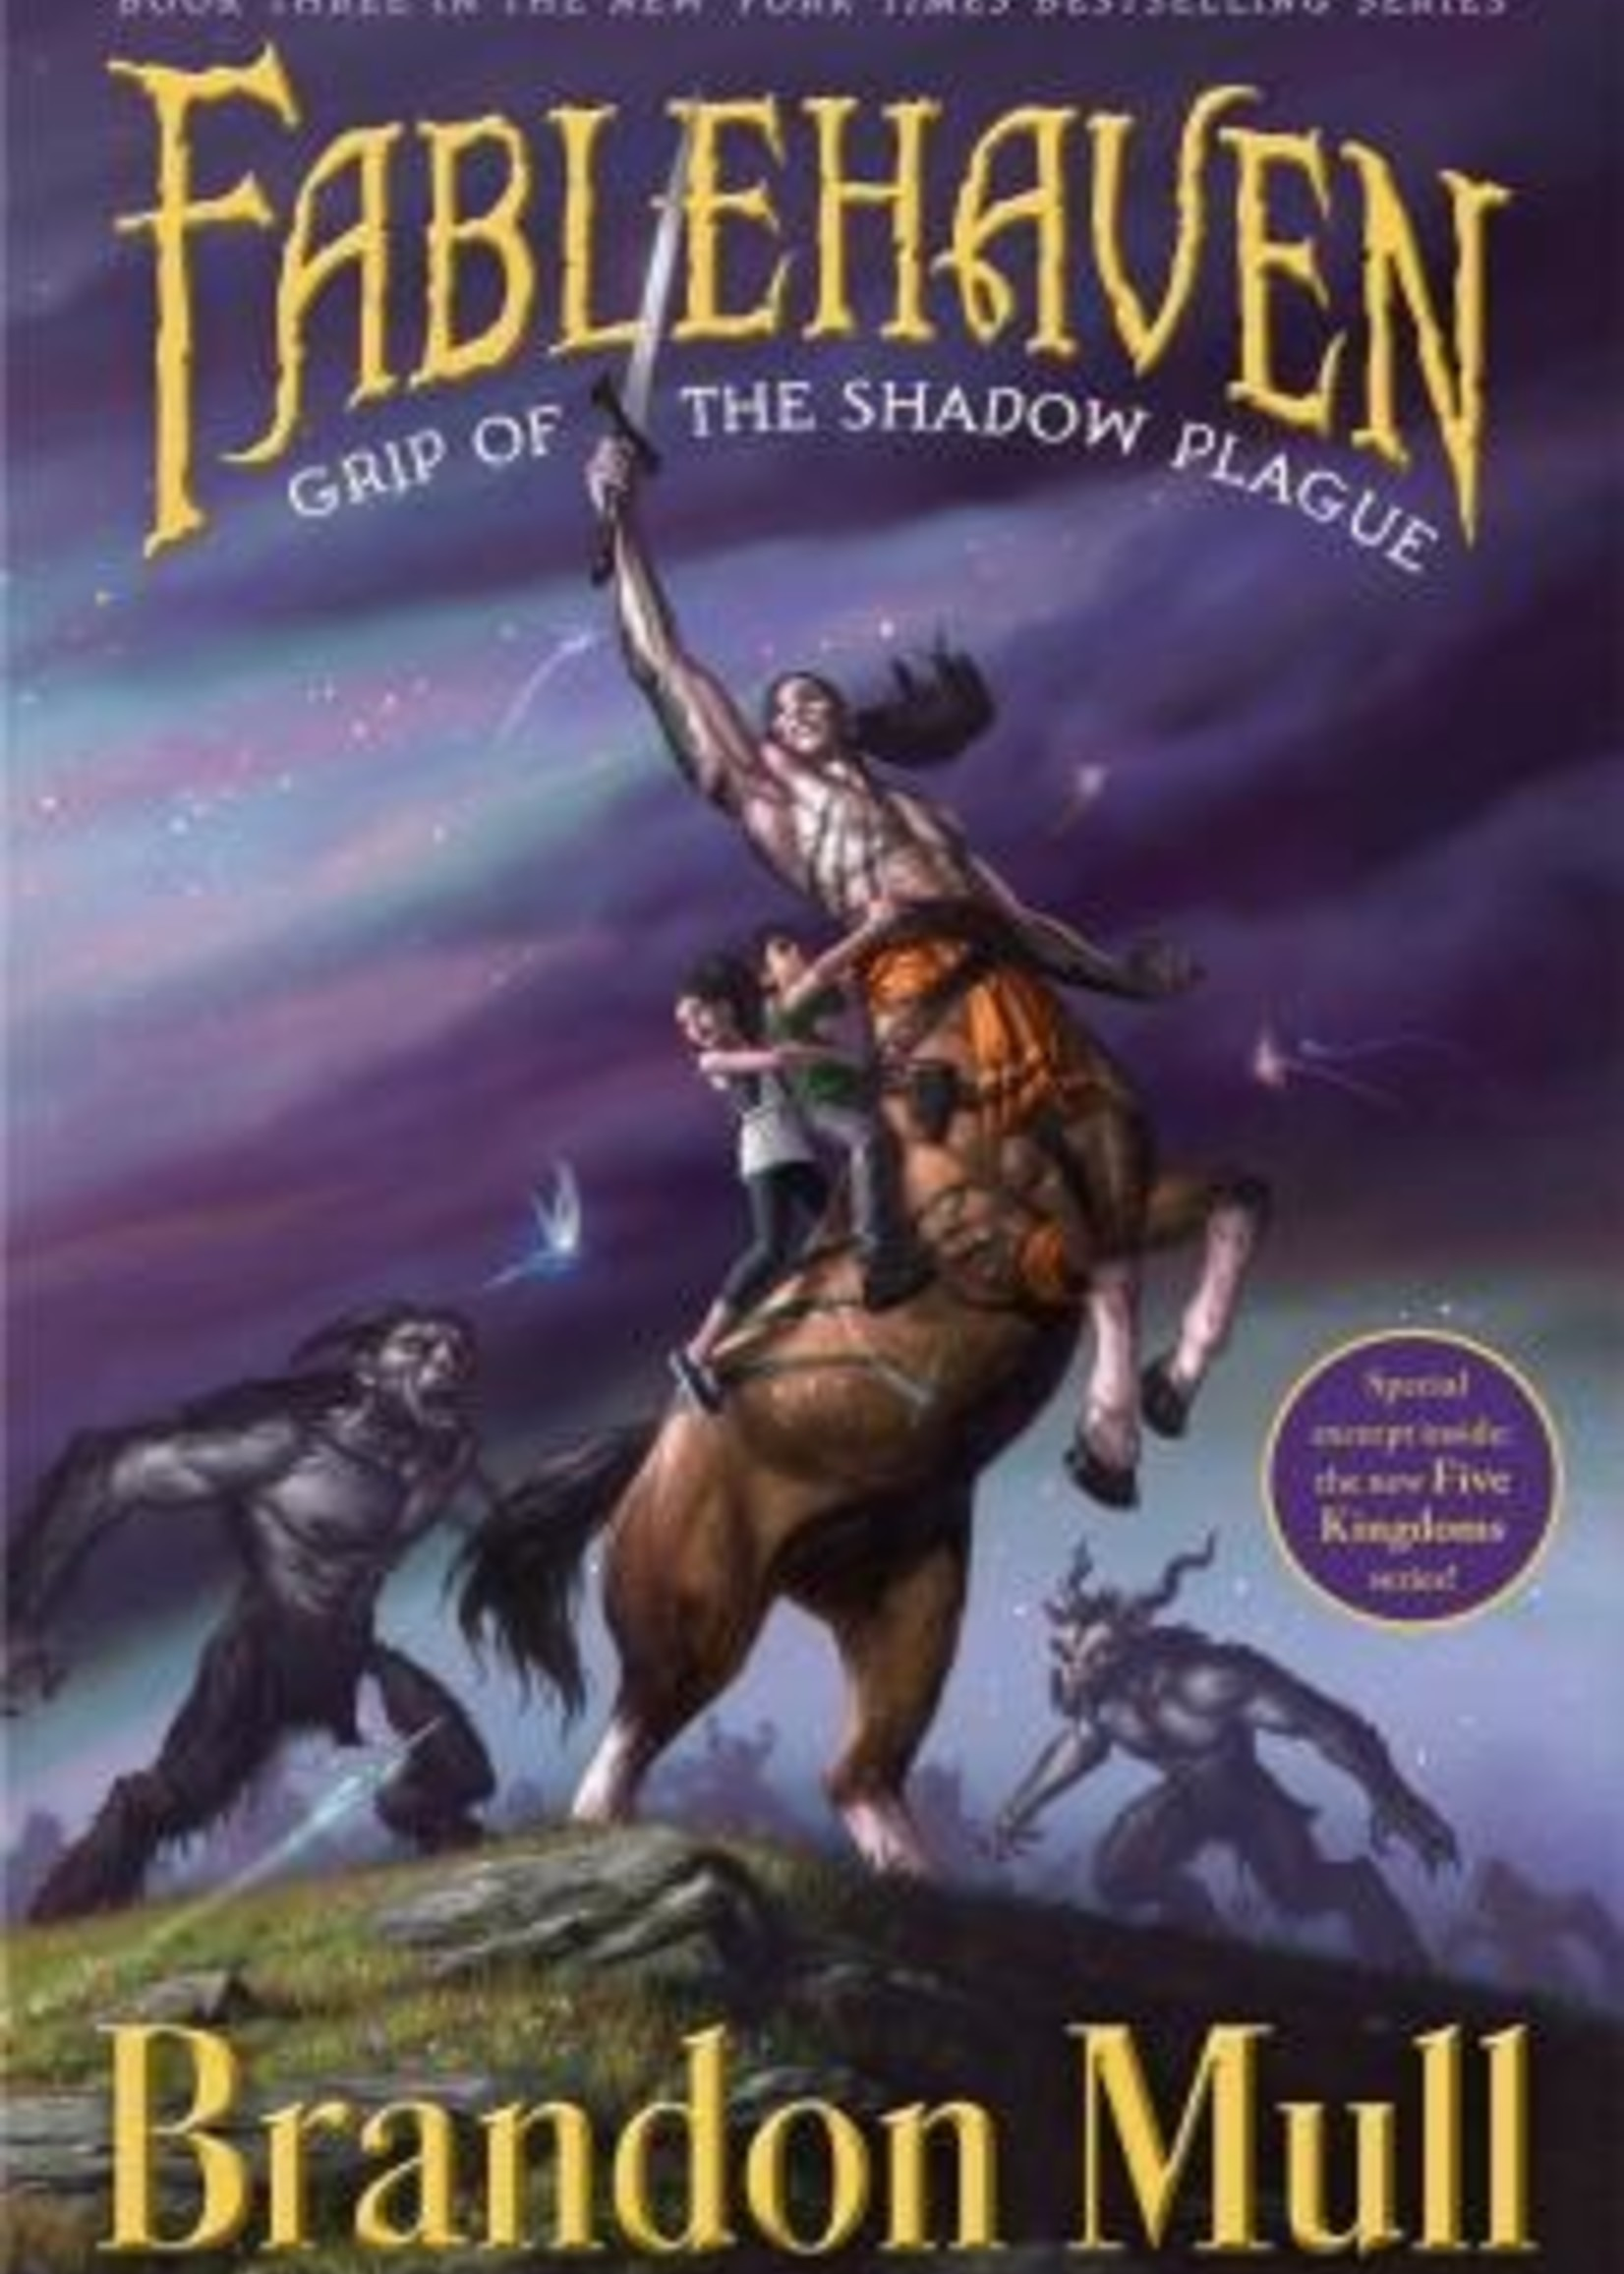 Fablehaven #03, Grip of the Shadow Plague - Paperback